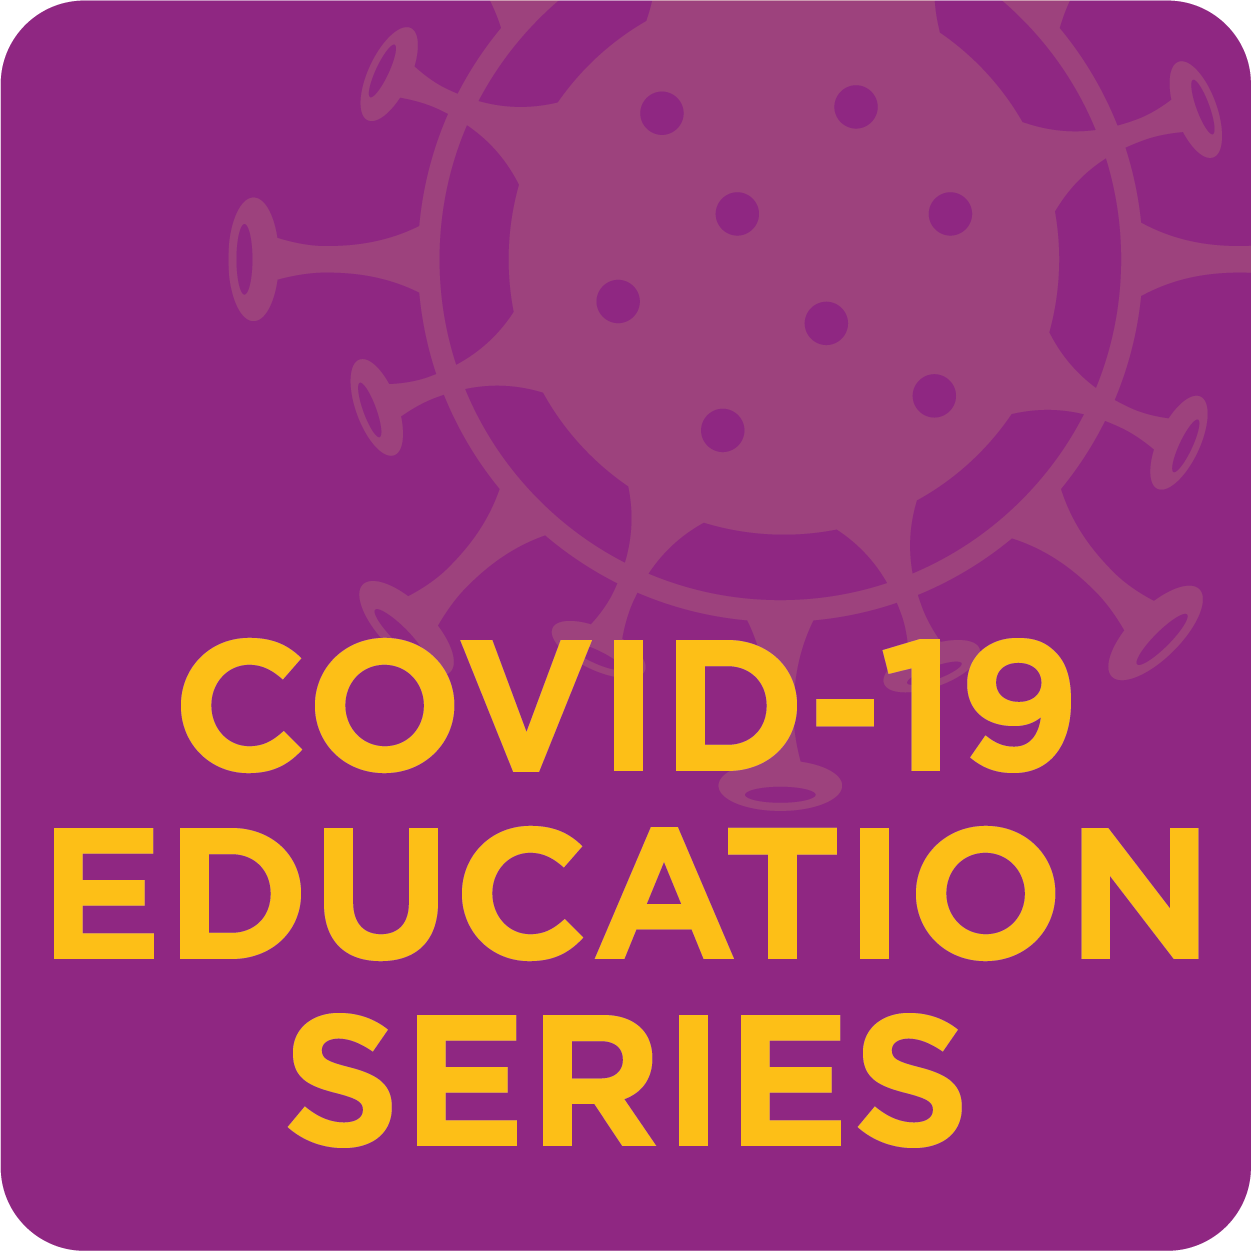 ACC COVID-19 Education Series